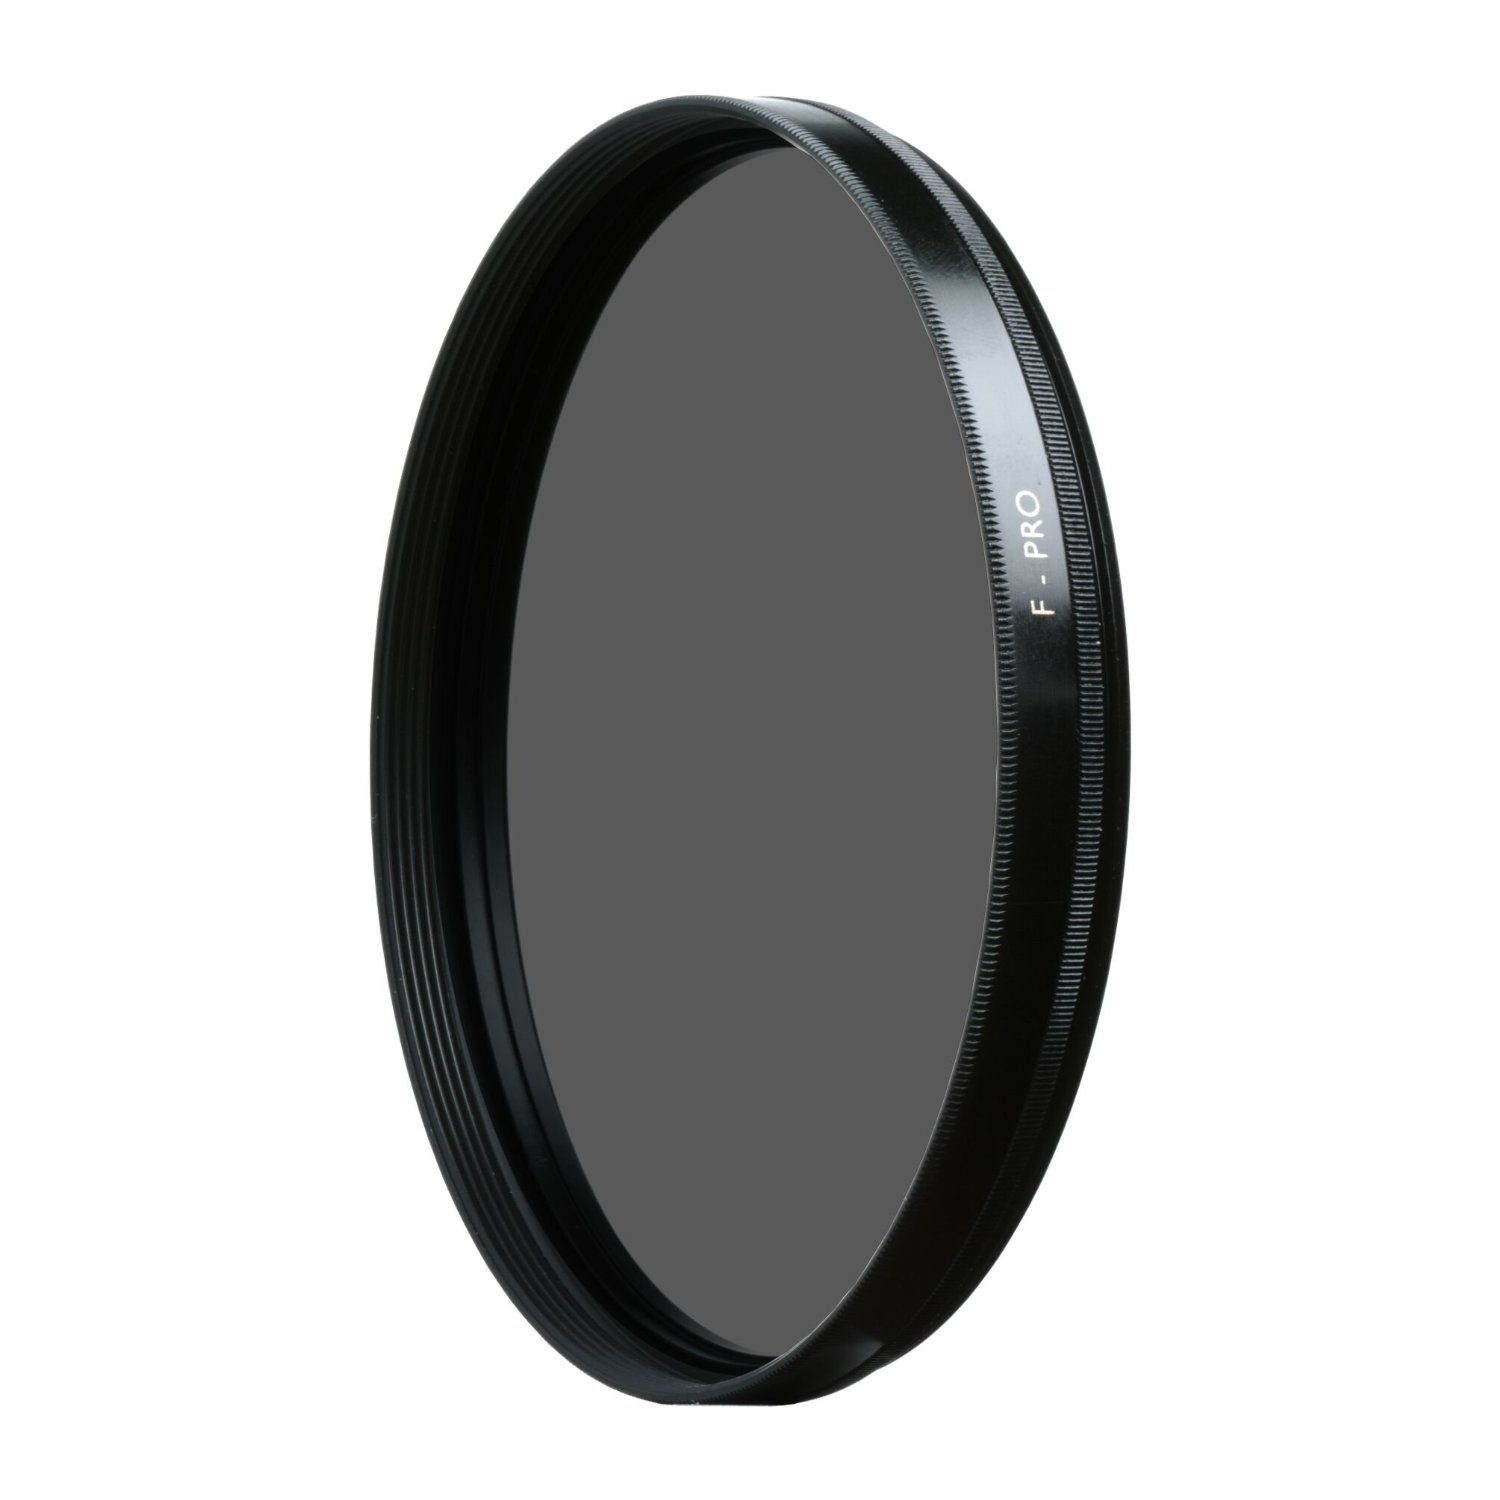 Circular Polarizer Filter, how do circular polarizers work